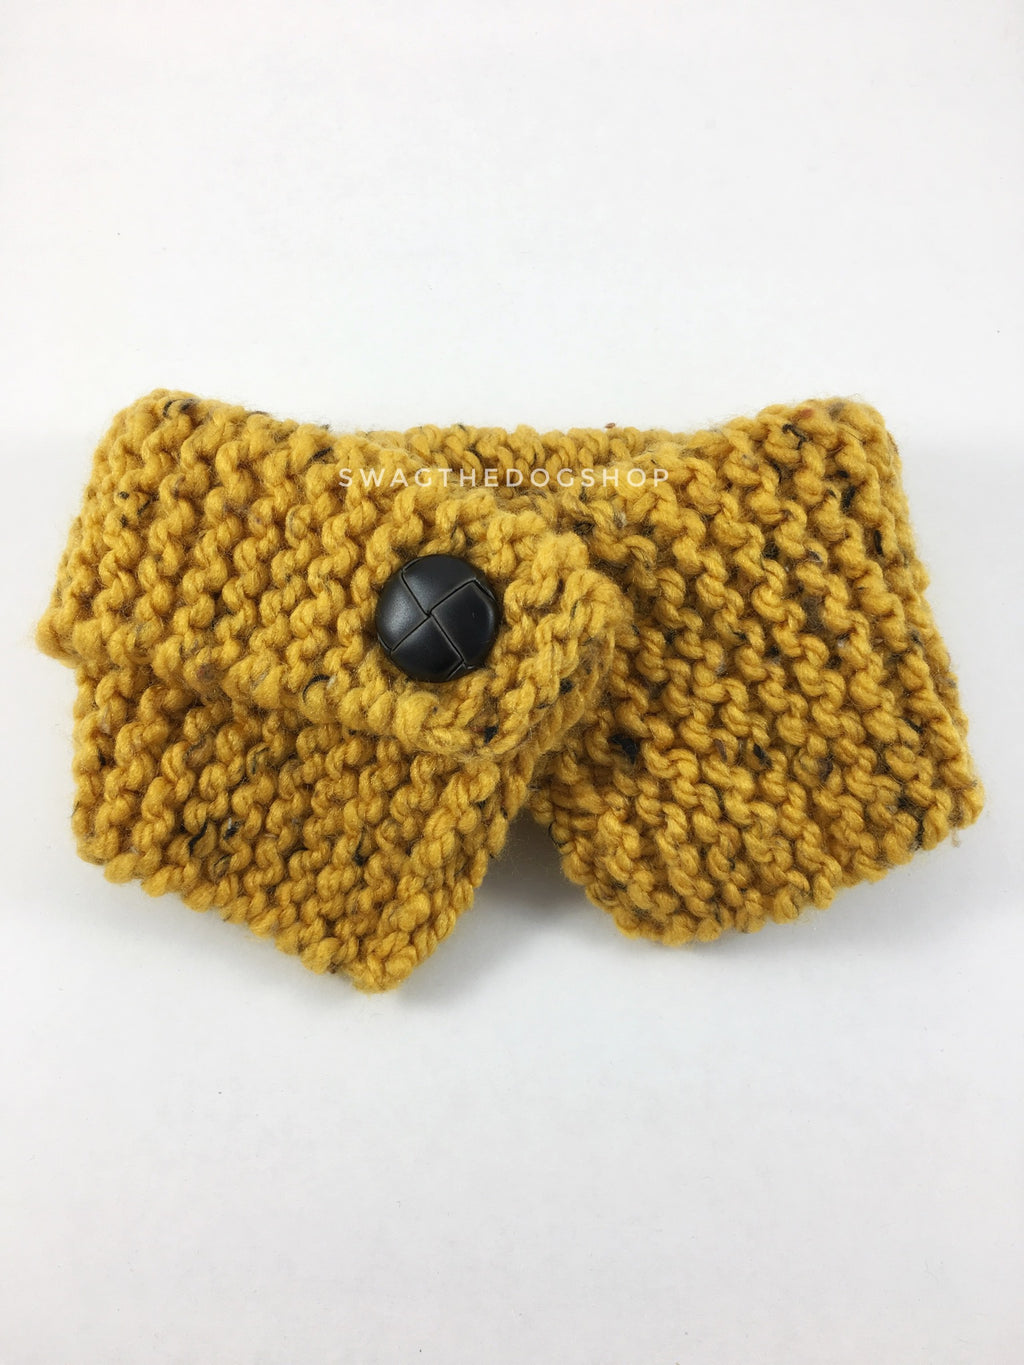 Honey Mustard Tweed Swagsnood - Product Front View. Honey Mustard Color with Black Speck Tweed Dog Snood with Accent Button